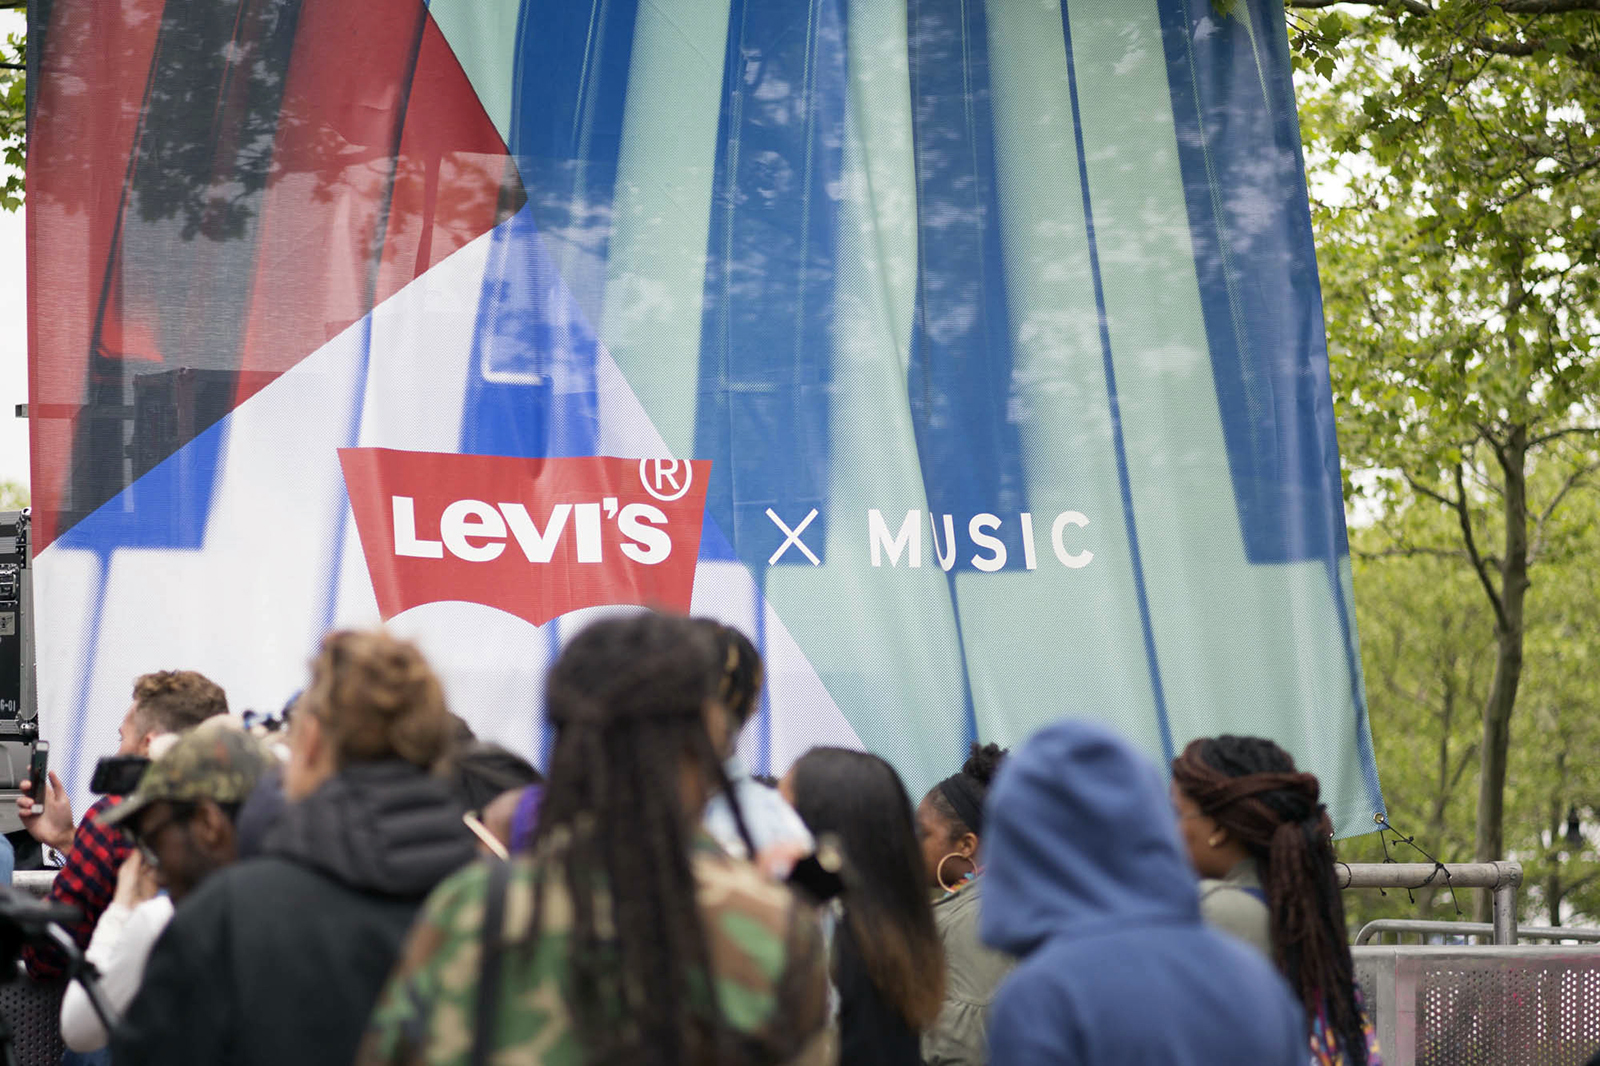 Photo_Levis_Music_FW16_SZA-Activation_Corrected_0080-2.jpg